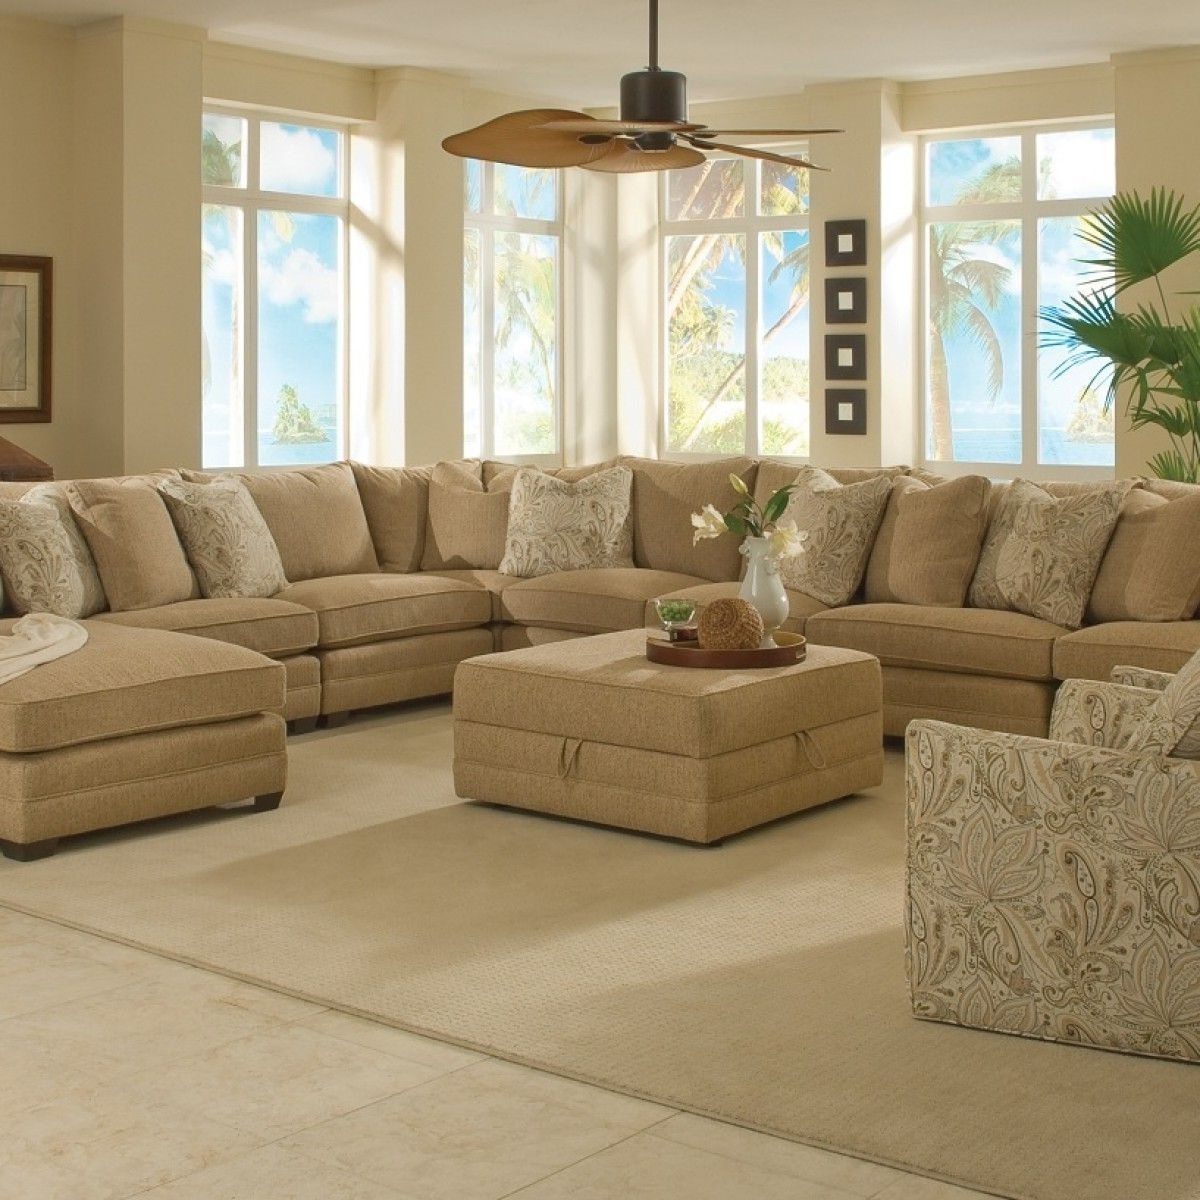 Gallery Furniture Sectional Sofas Throughout Famous Magnificent Large Sectional Sofas (View 13 of 20)